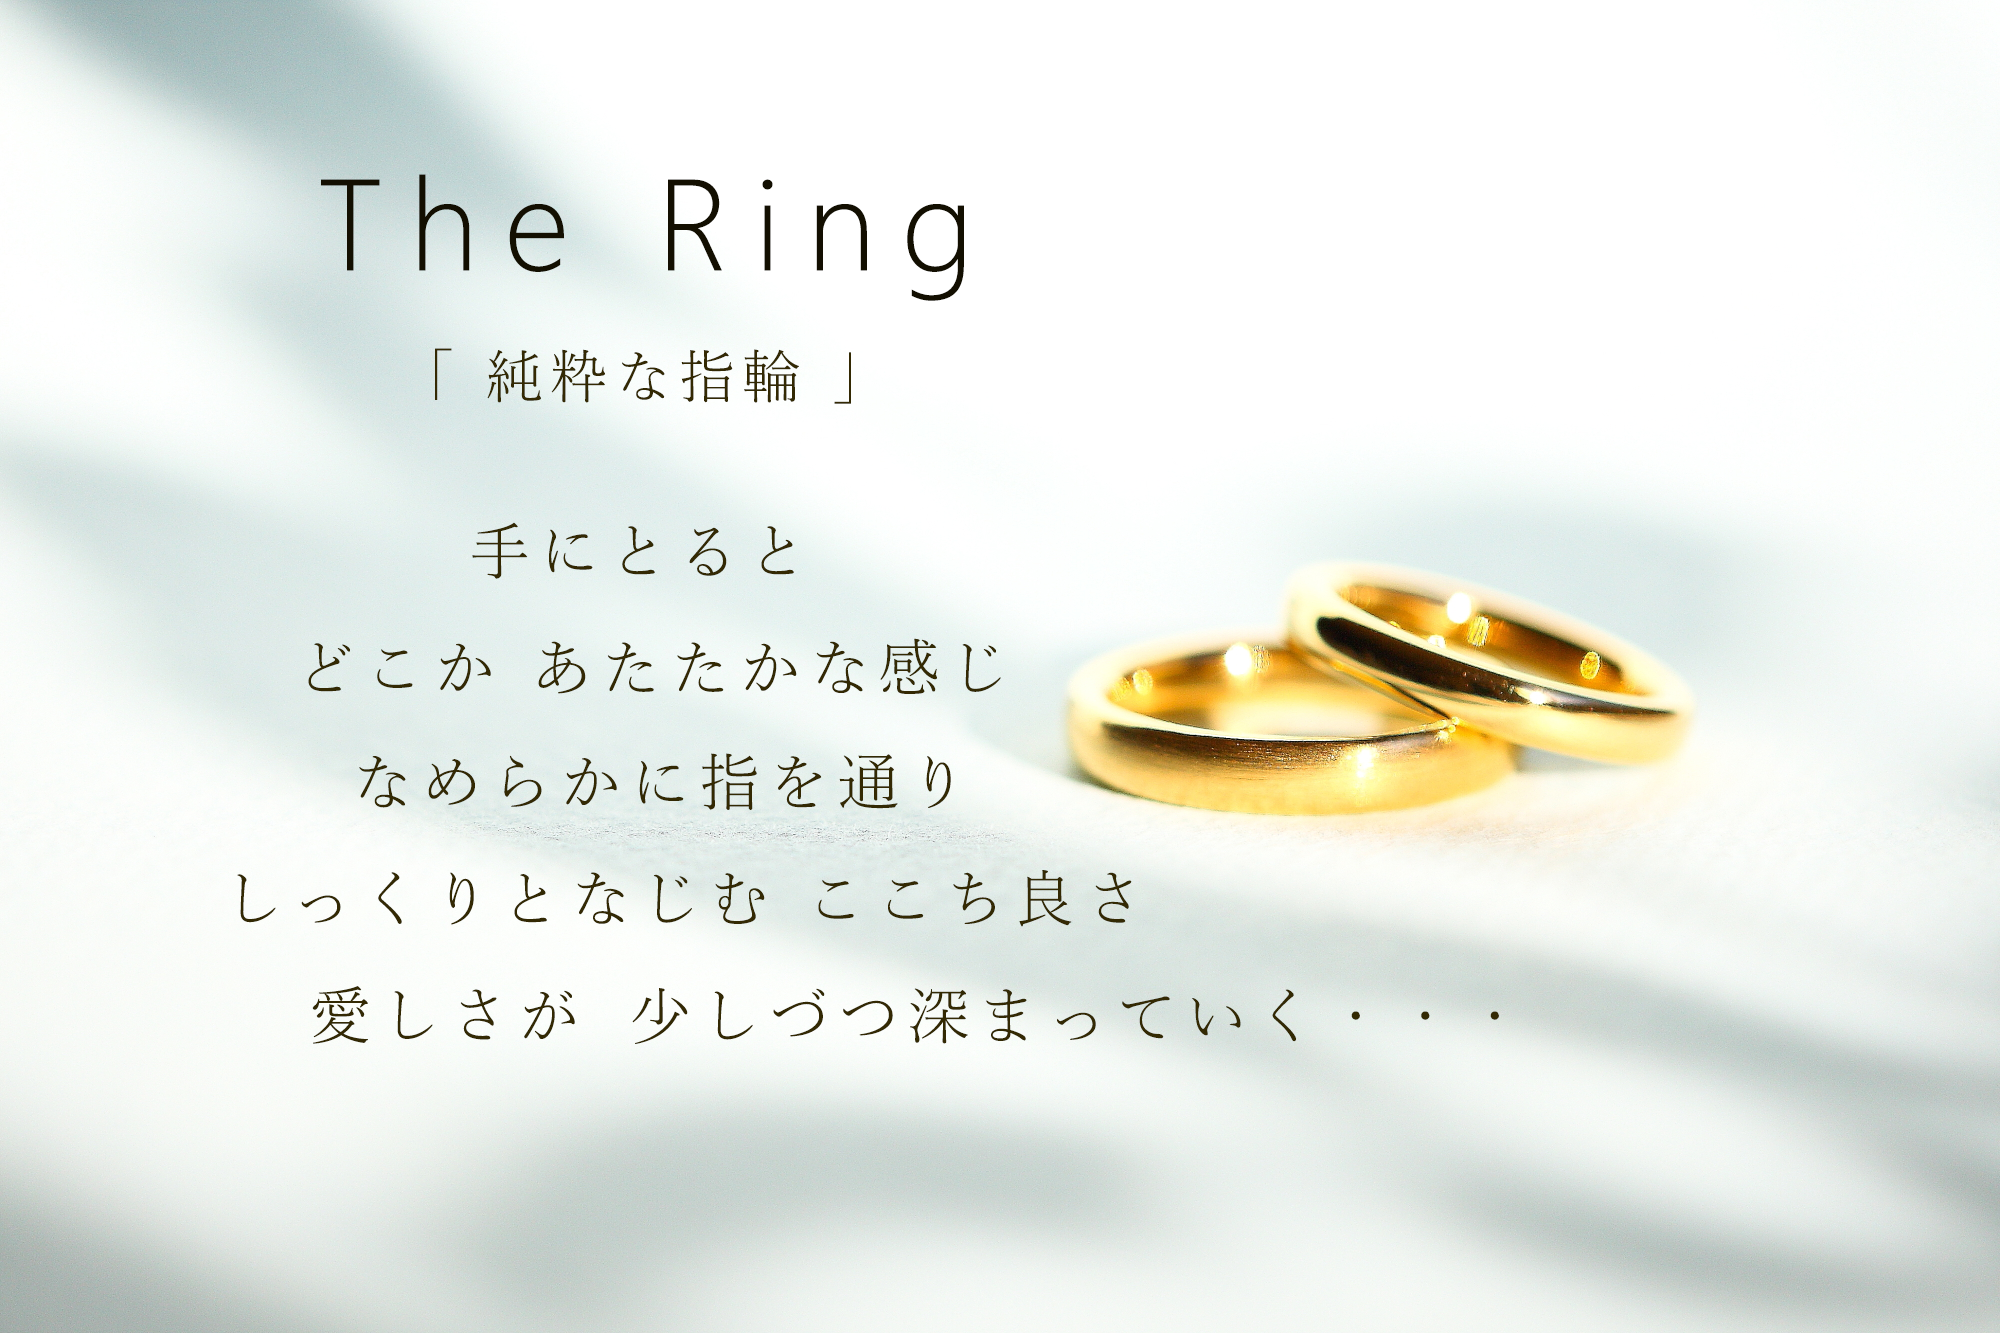 thering story1